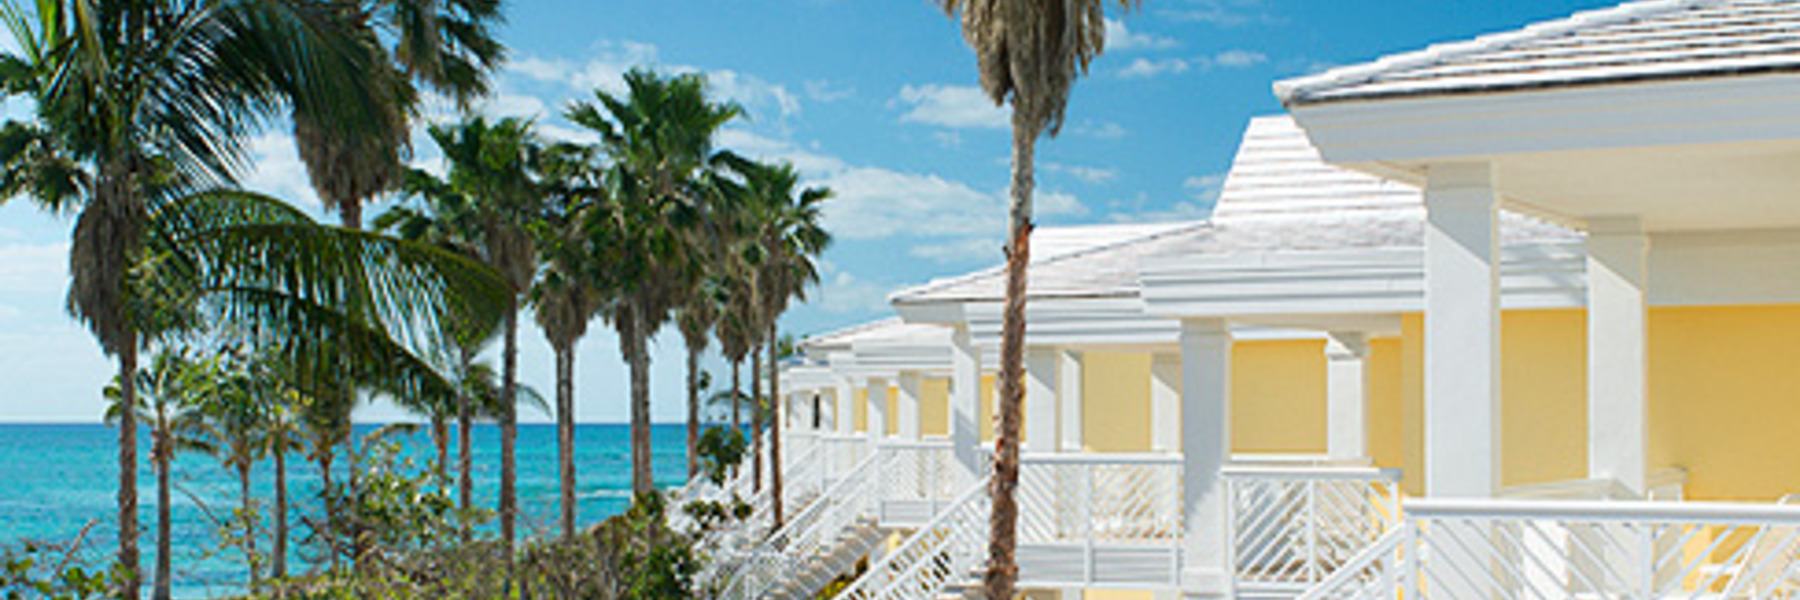 Golf Vacation Package - Grand Lucayan Resort All-Inclusive + Unlimited Golf for $167 per day!